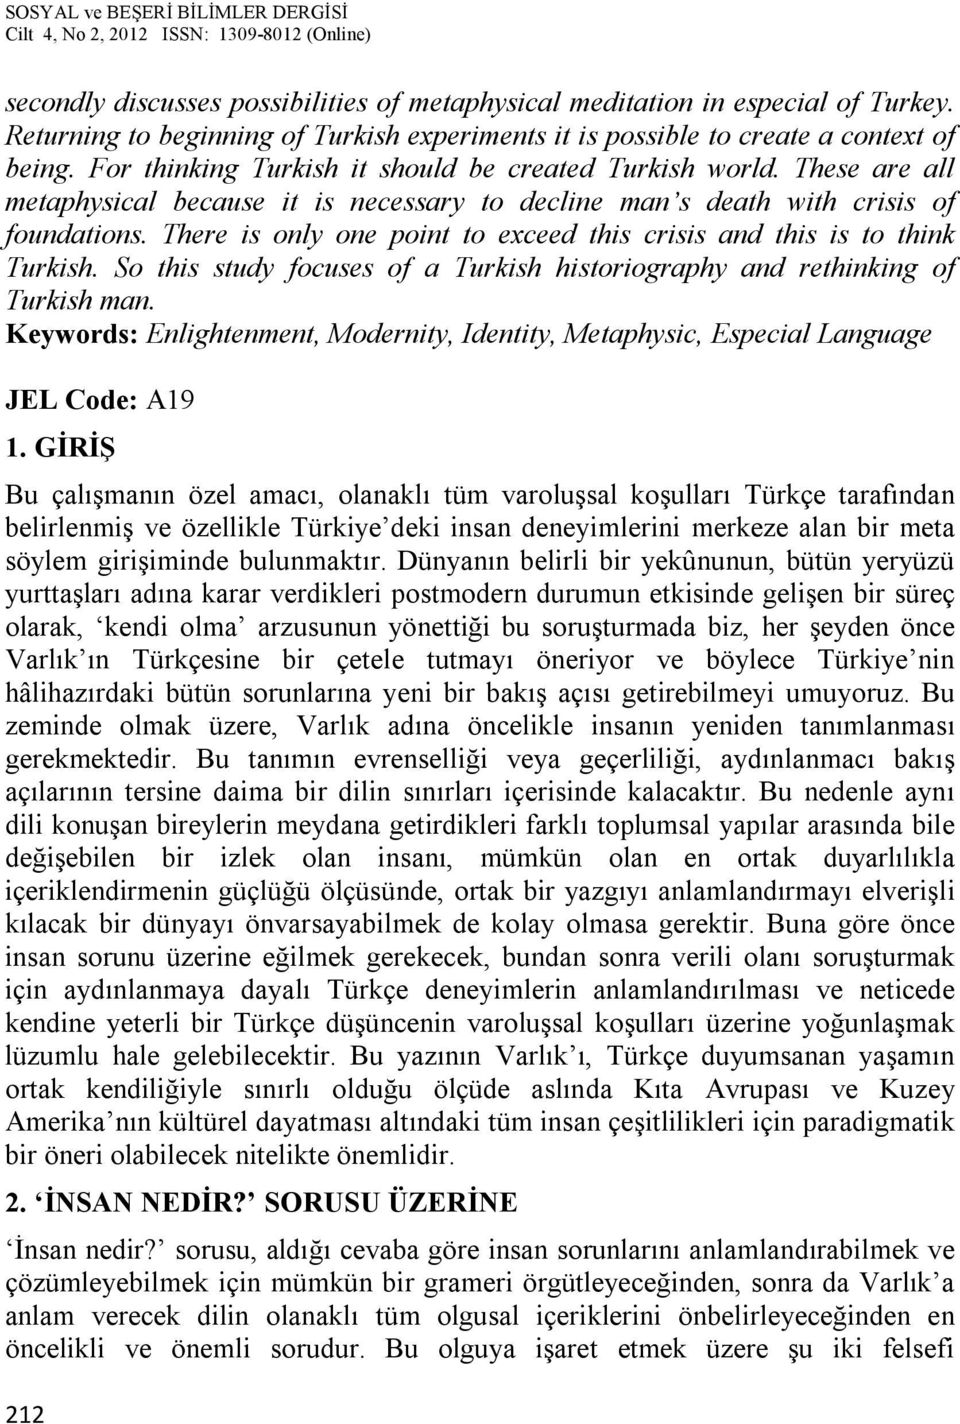 There is only one point to exceed this crisis and this is to think Turkish. So this study focuses of a Turkish historiography and rethinking of Turkish man.